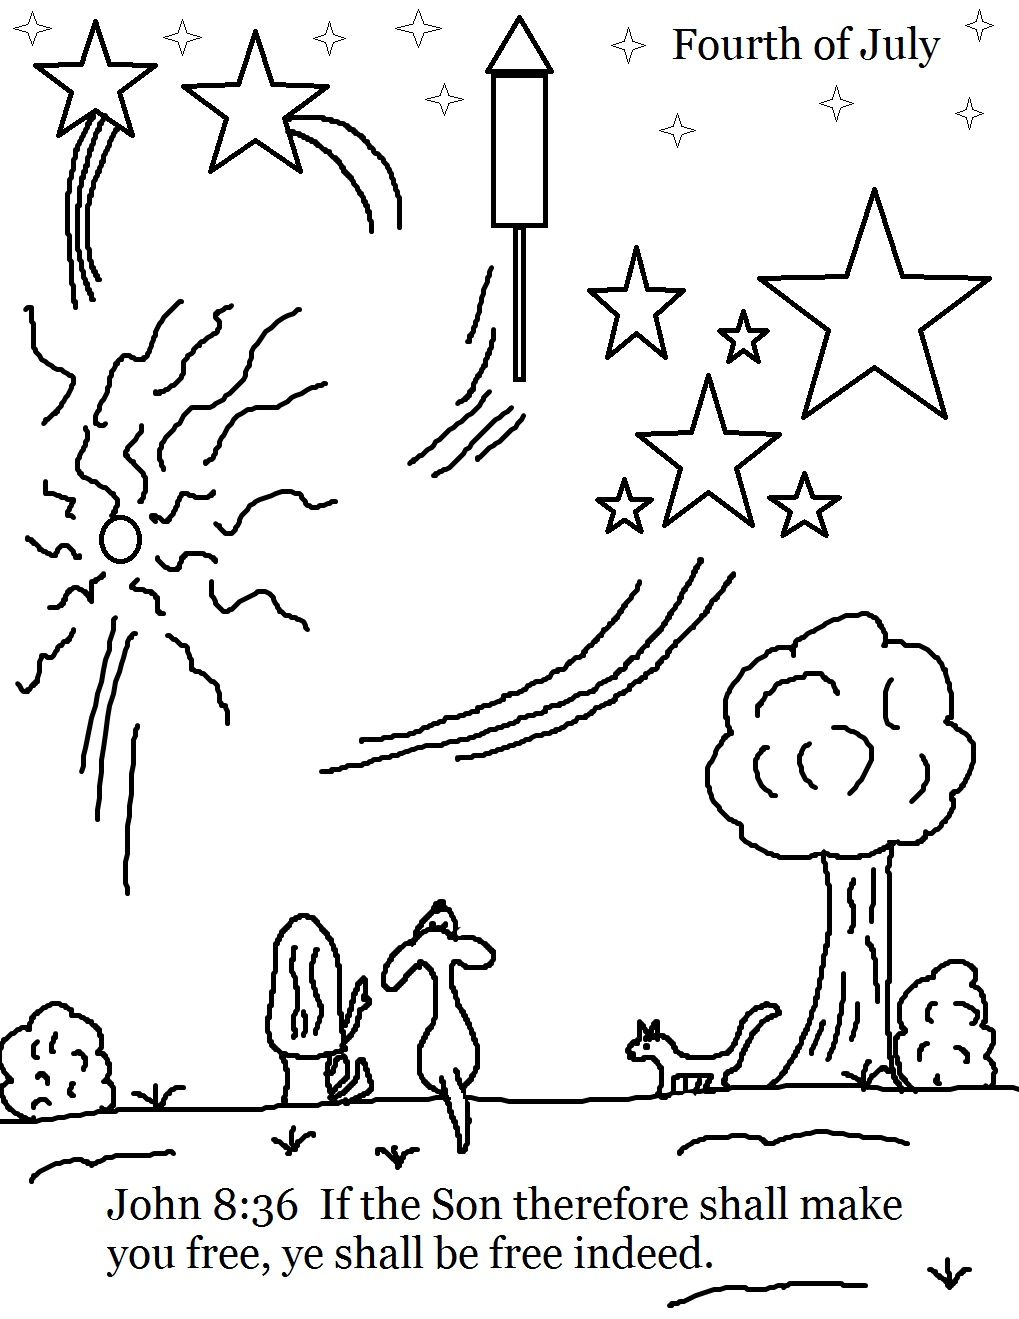 sunday school lessons coloring pages - photo#34